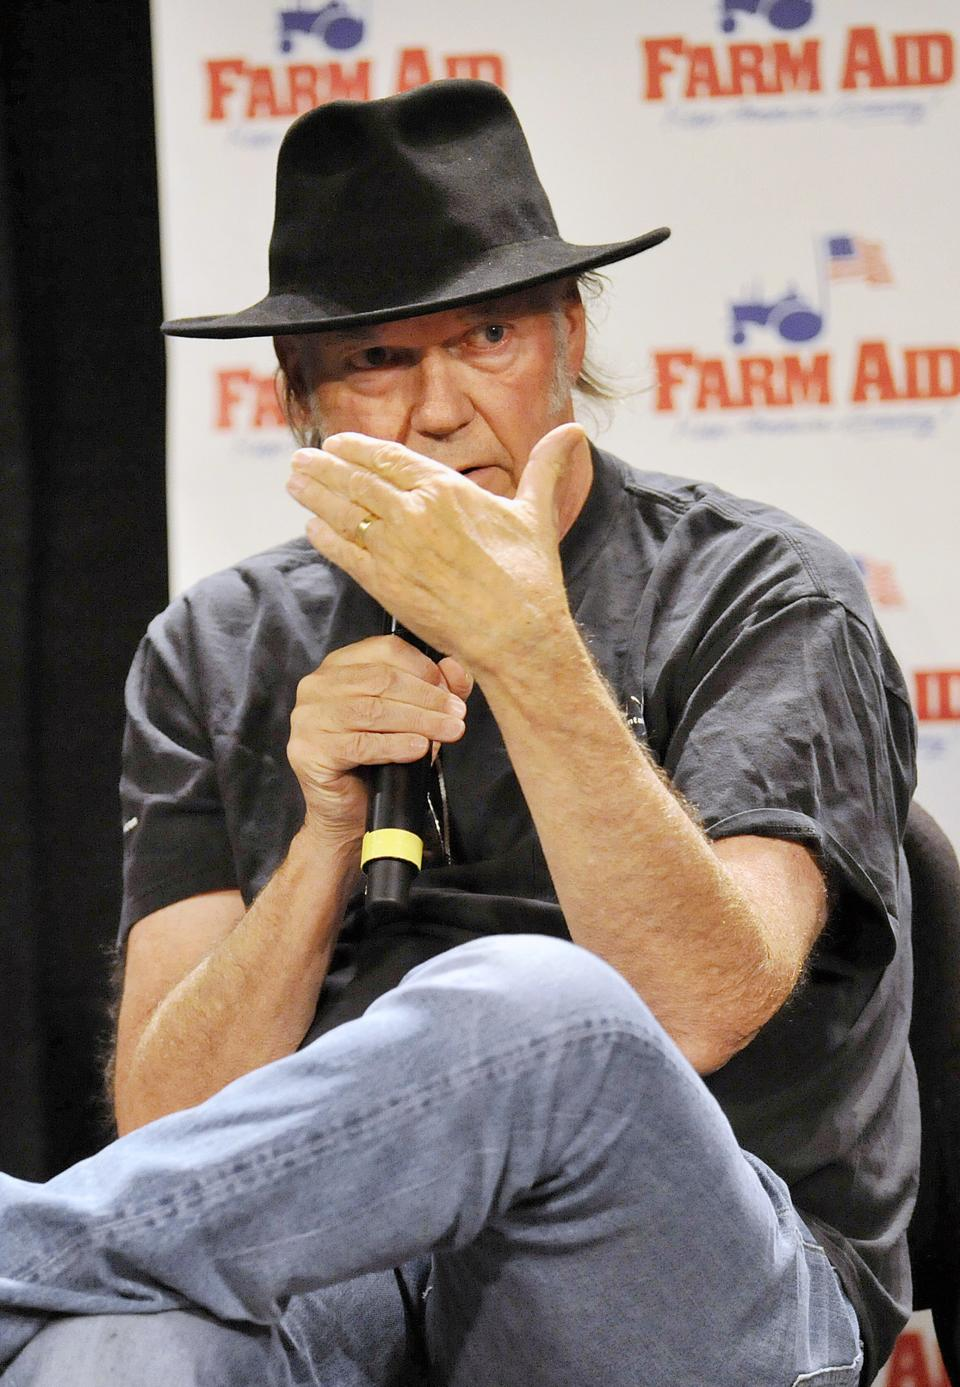 Neil Young talks with reporters during a news conference prior to the start of the Farm Aid 2013 concert at Saratoga Performing Arts Center in Saratoga Springs, N.Y., Saturday, Sept. 21, 2013. (AP Photo/Hans Pennink)